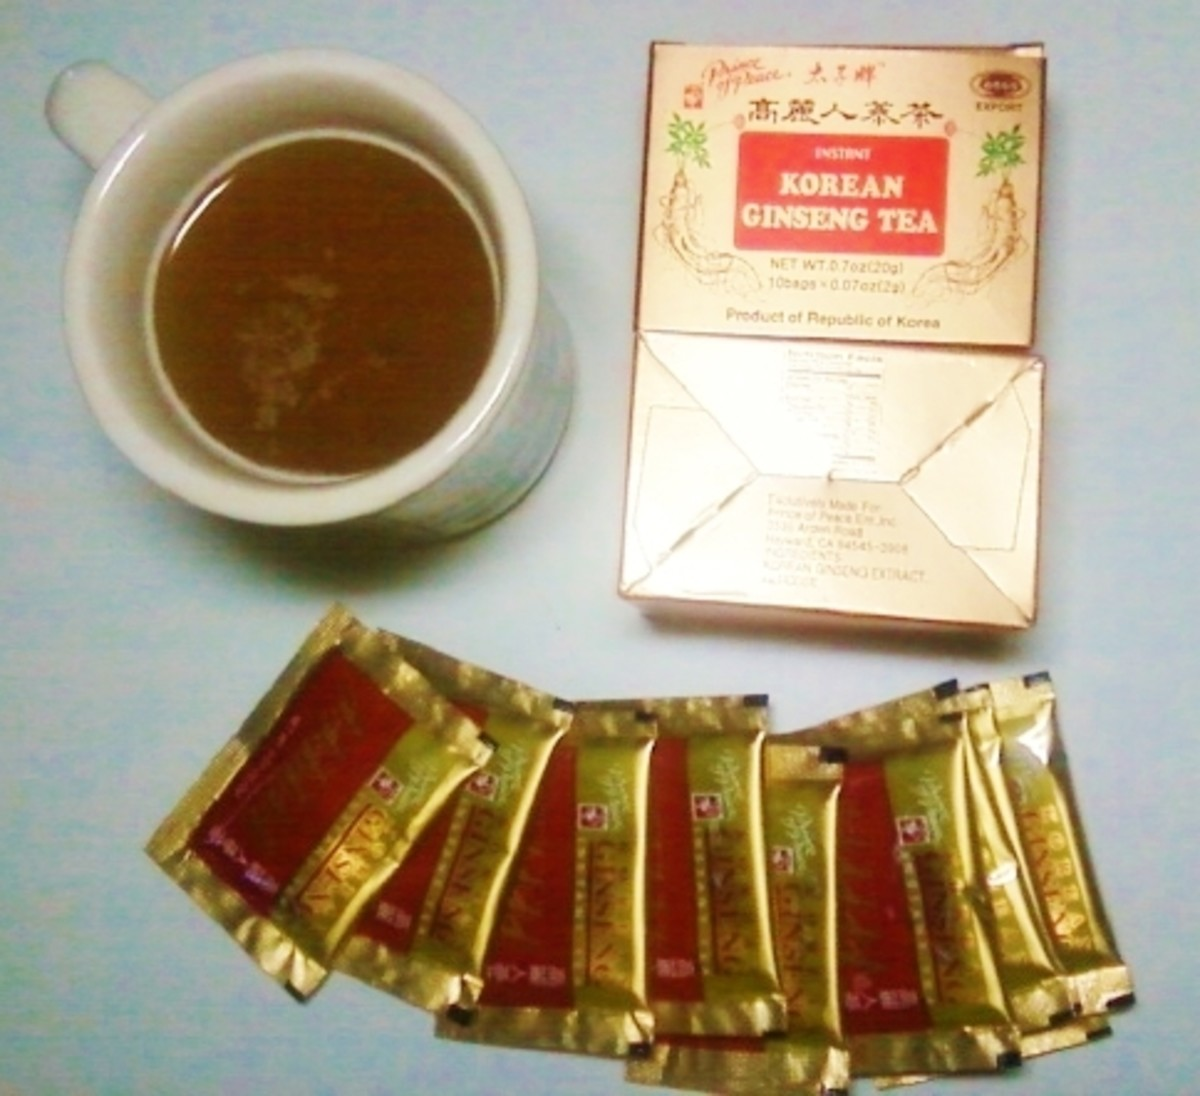 This instant ginseng tea is an authentic product of Korea.